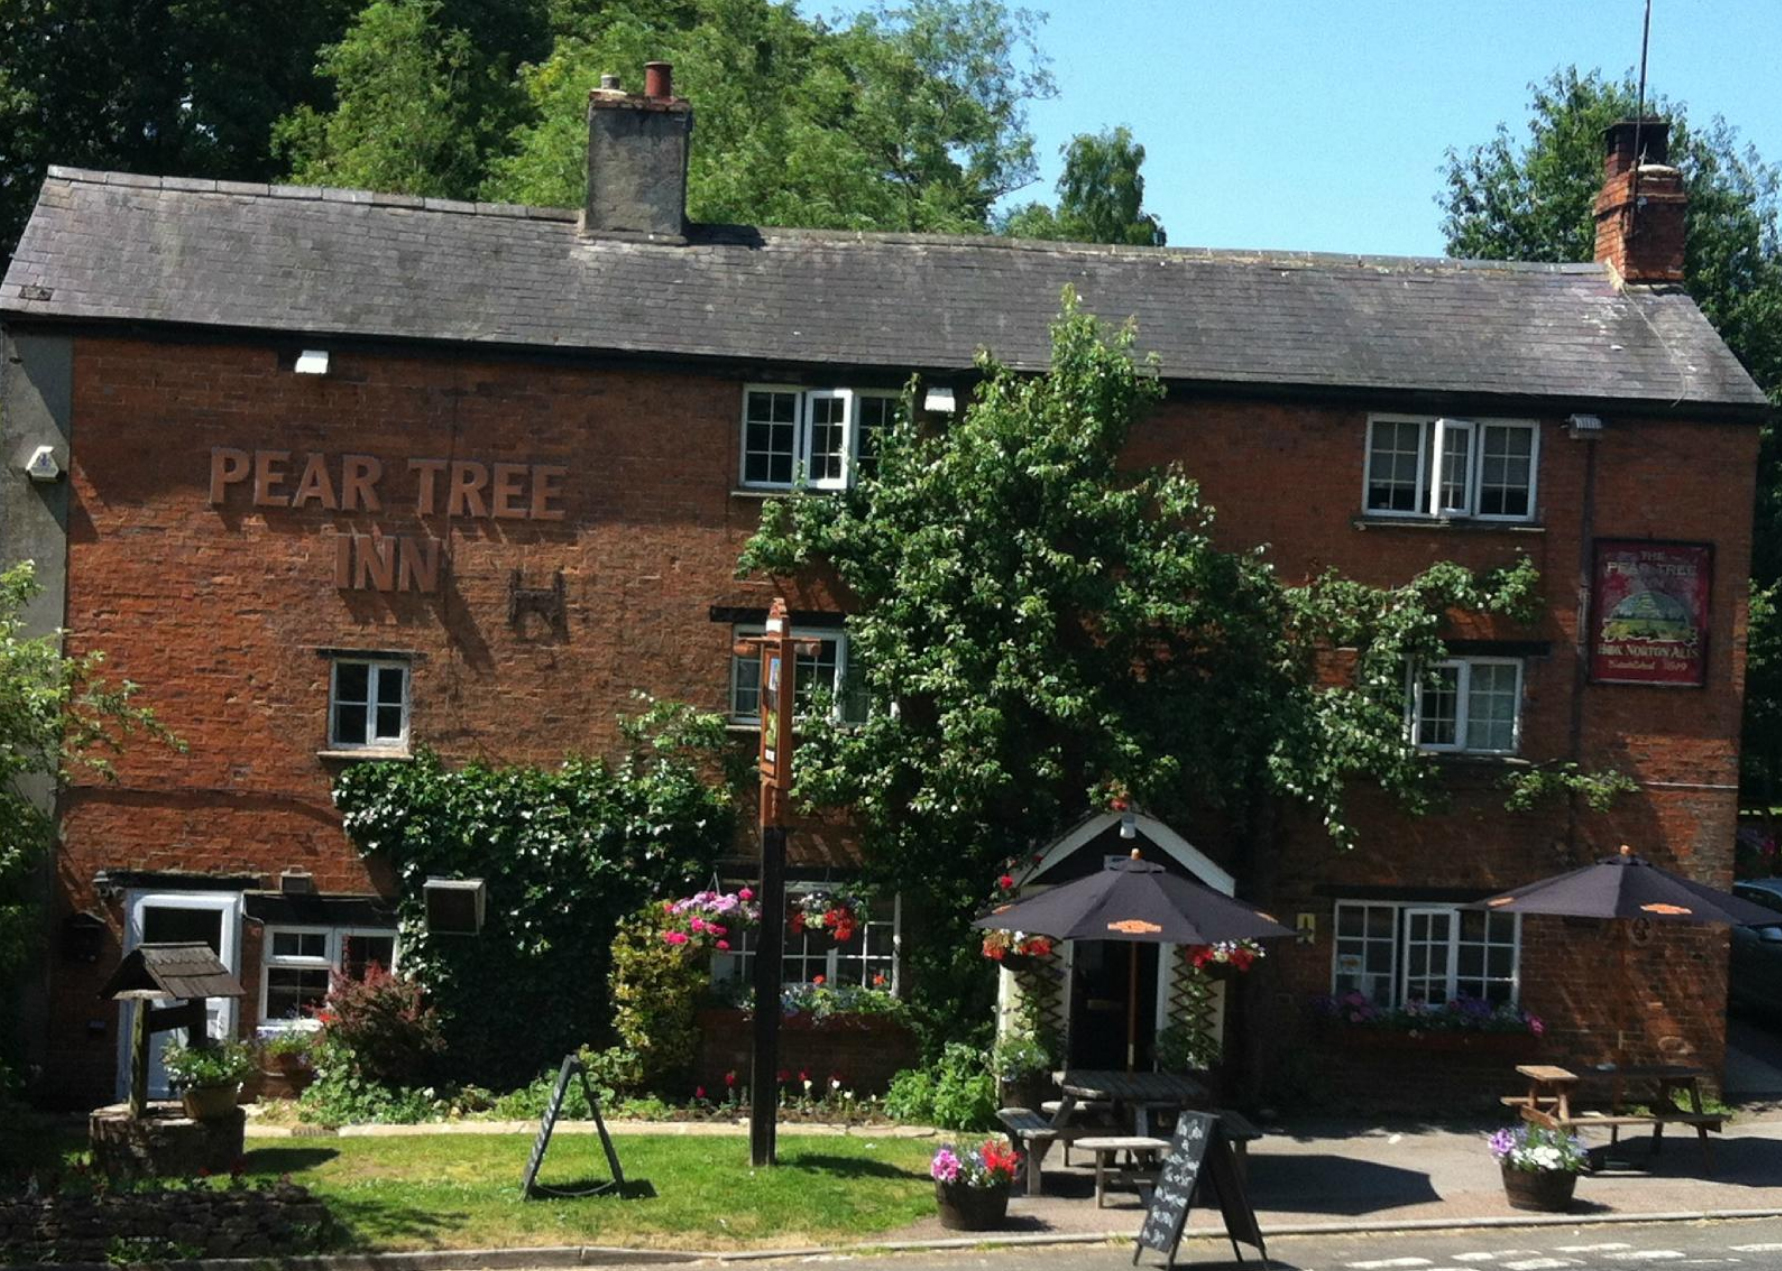 Pear Tree Inn front entrance